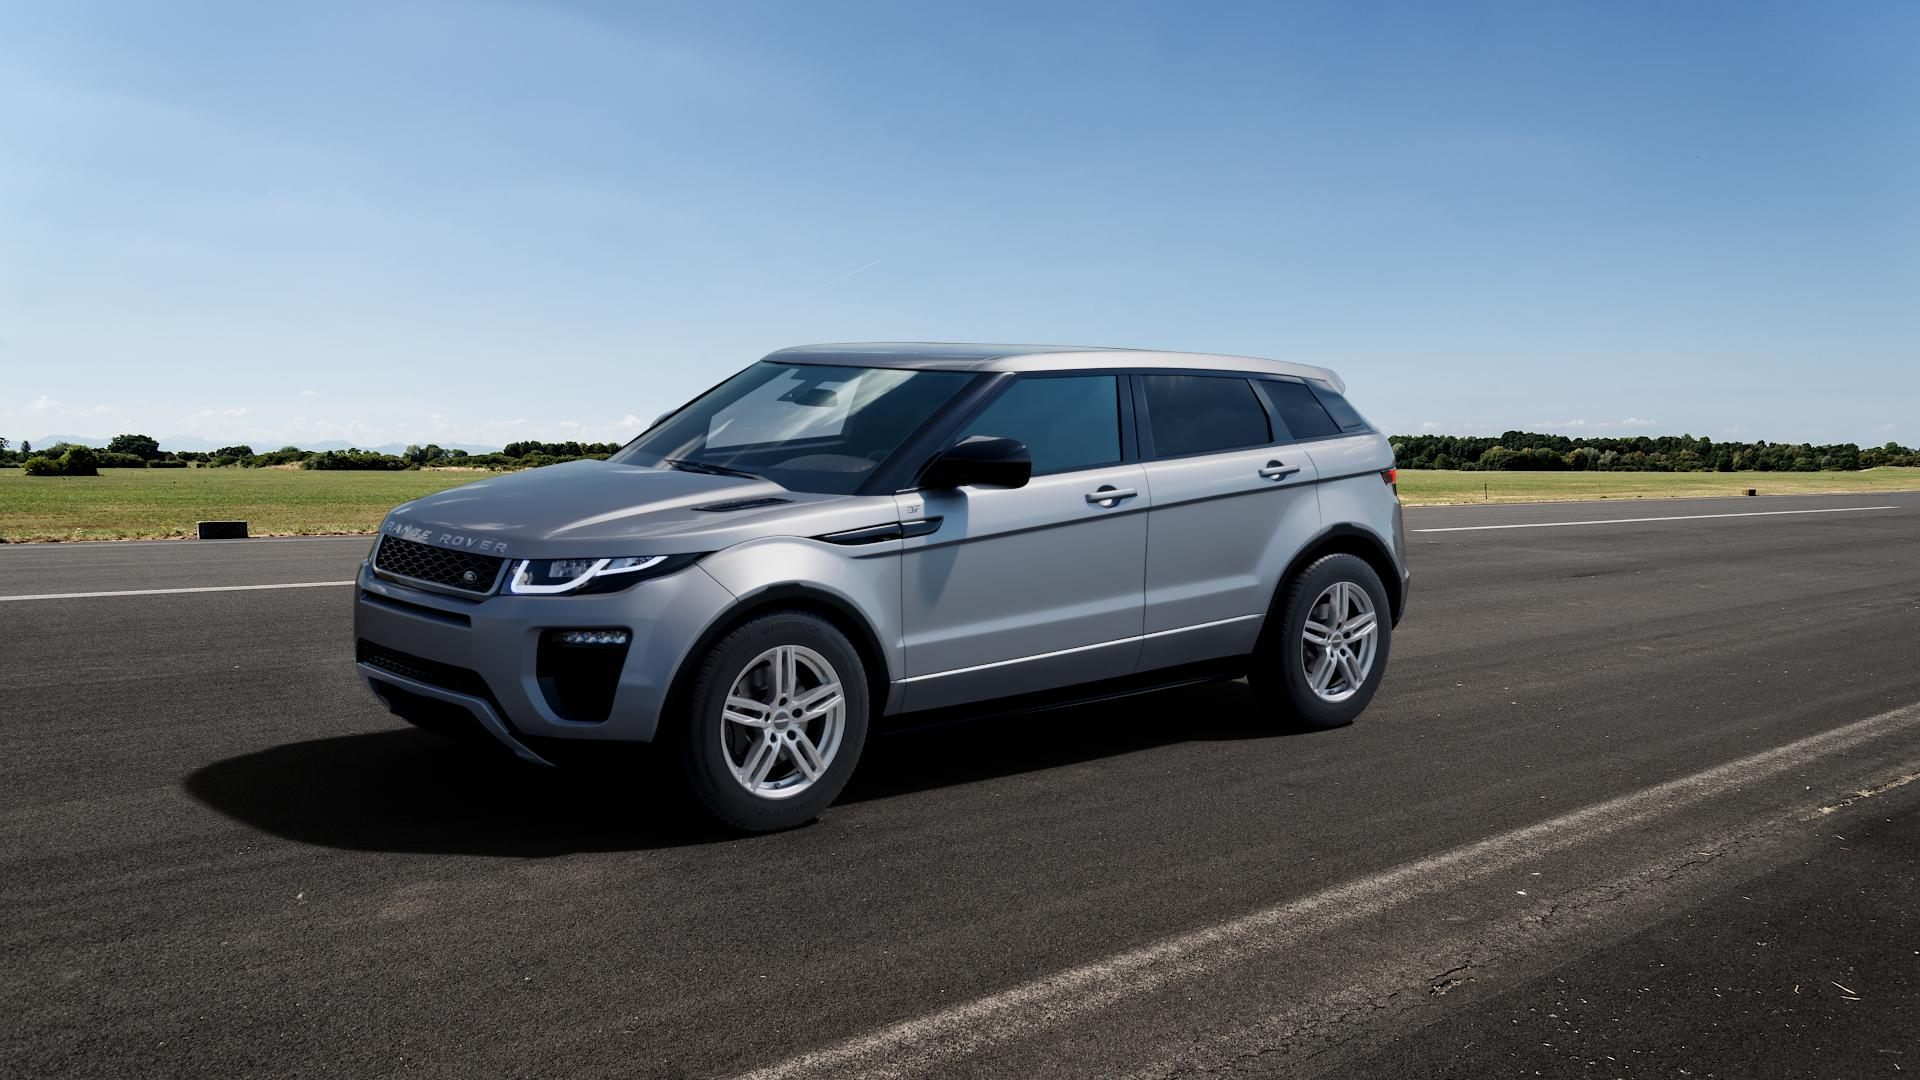 CARMANI 14 Paul kristall silber Felge mit Reifen in 17Zoll Winterfelge Alufelge auf silbernem Land Rover Range Evoque Typ LV Facelift ⬇️ mit 15mm Tieferlegung ⬇️ Big_Vehicle_Airstrip_1 Frontansicht_1